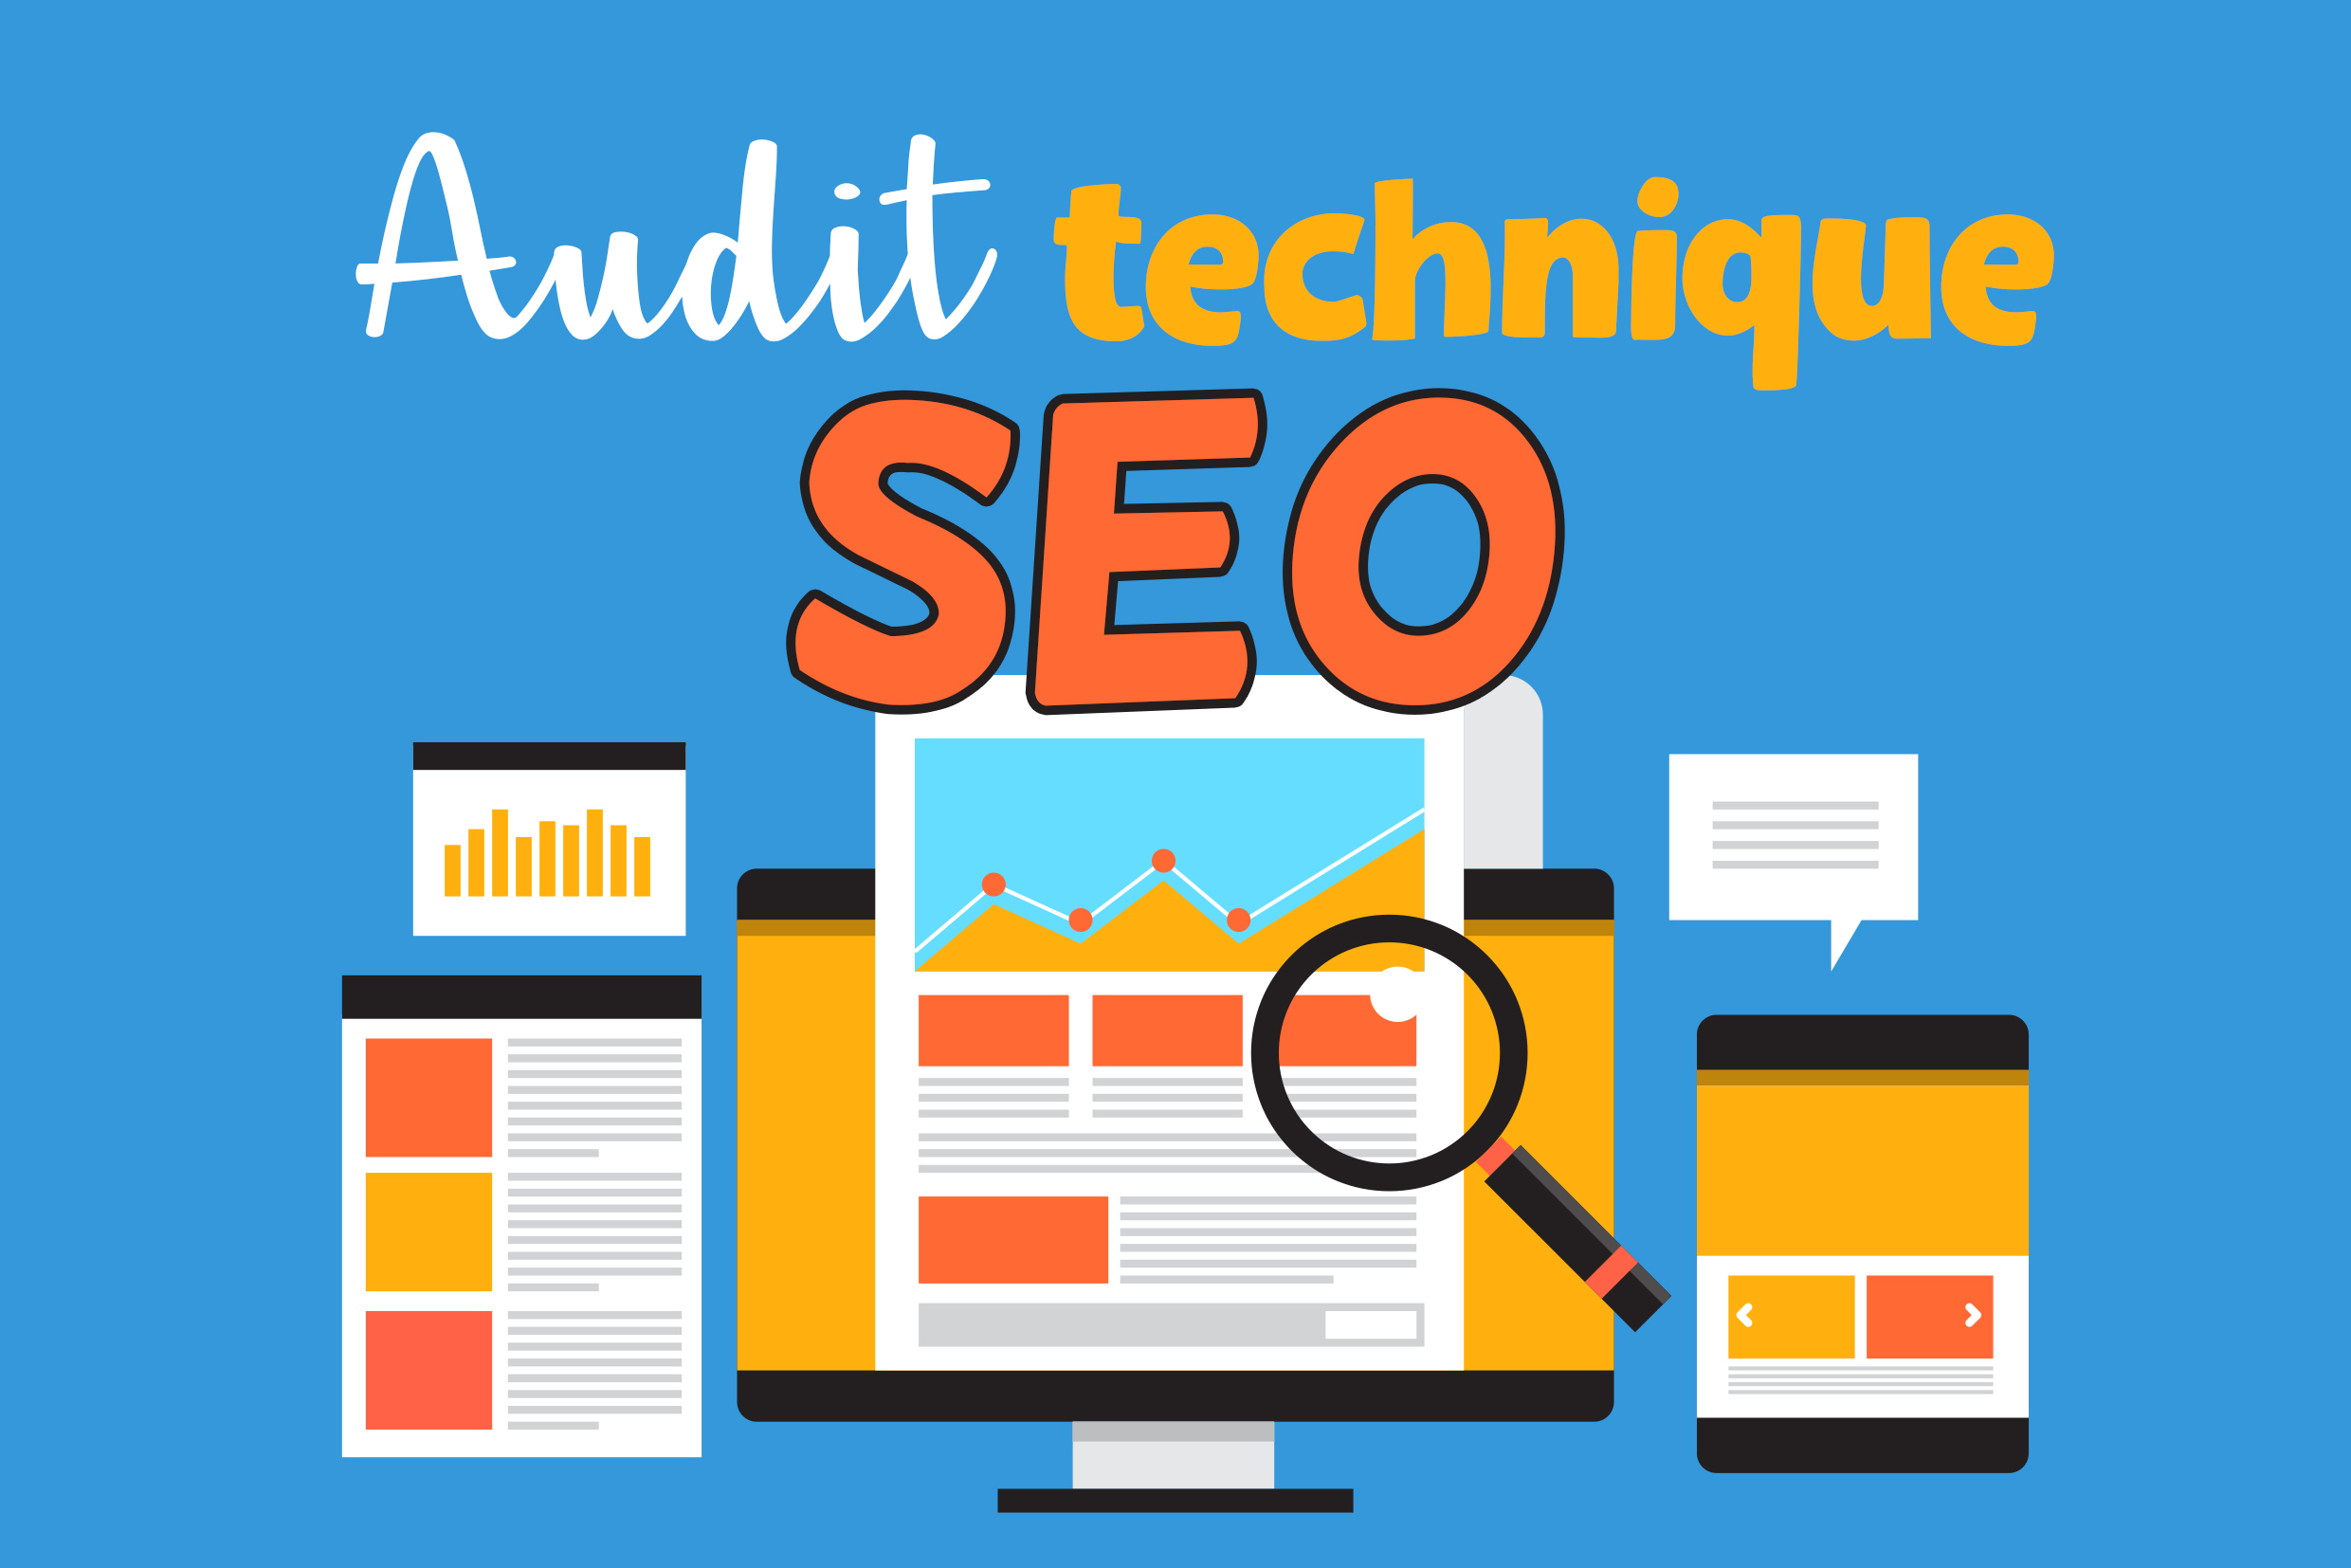 Réaliser un audit technique SEO : la méthode en 9 points pour un site web performant